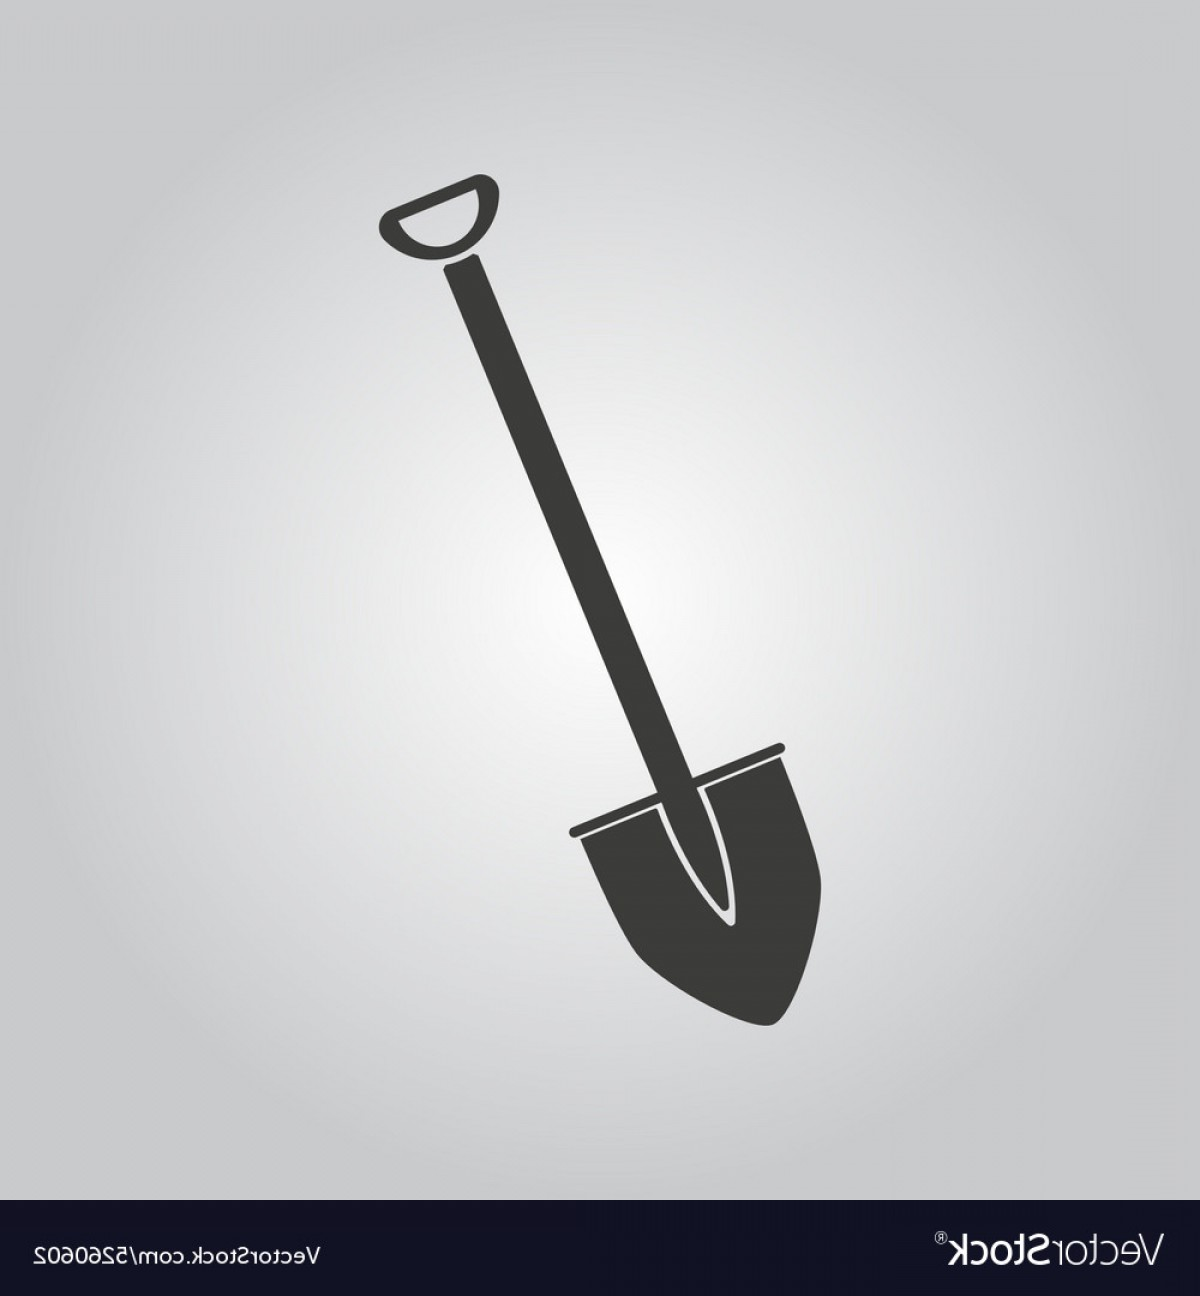 Shovel Vector: The Shovel Icon Spade Symbol Flat Vector